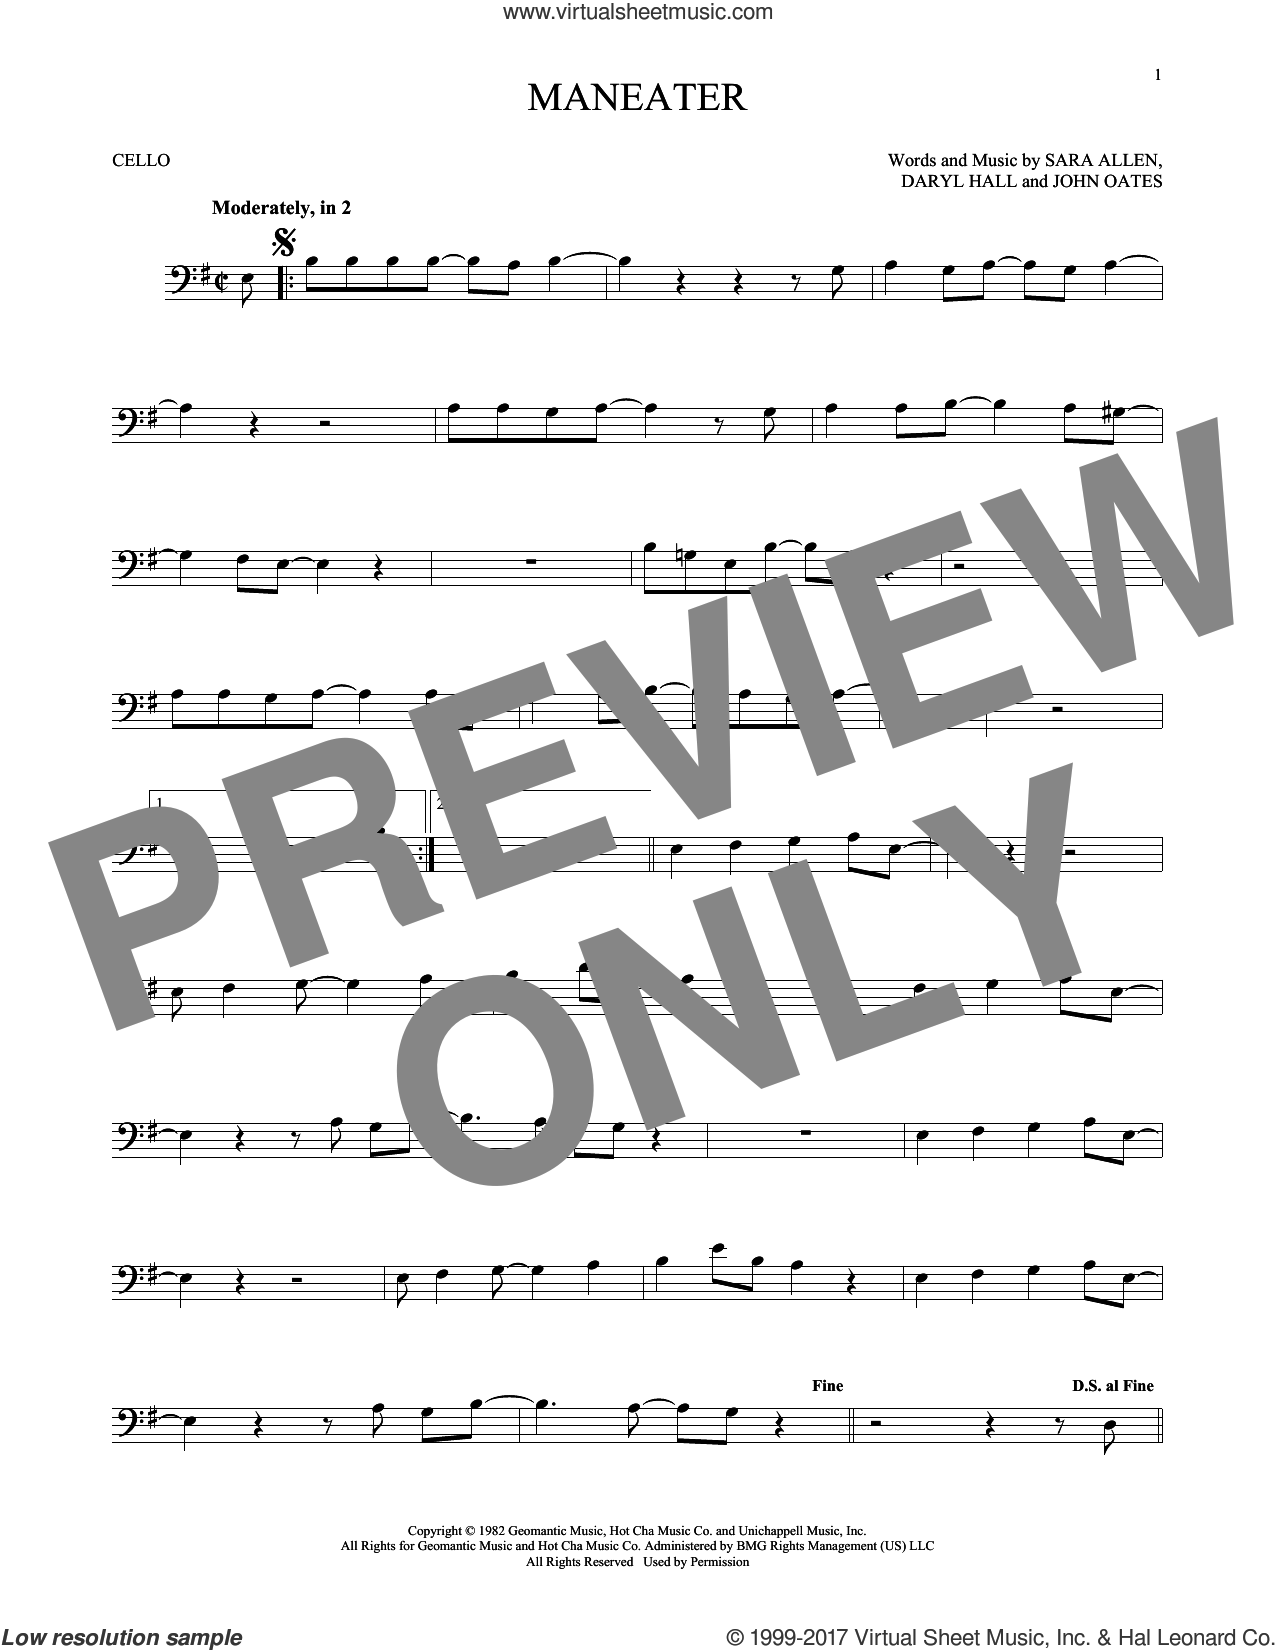 Maneater sheet music for cello solo by Hall and Oates, Daryl Hall, John Oates and Sara Allen, intermediate skill level